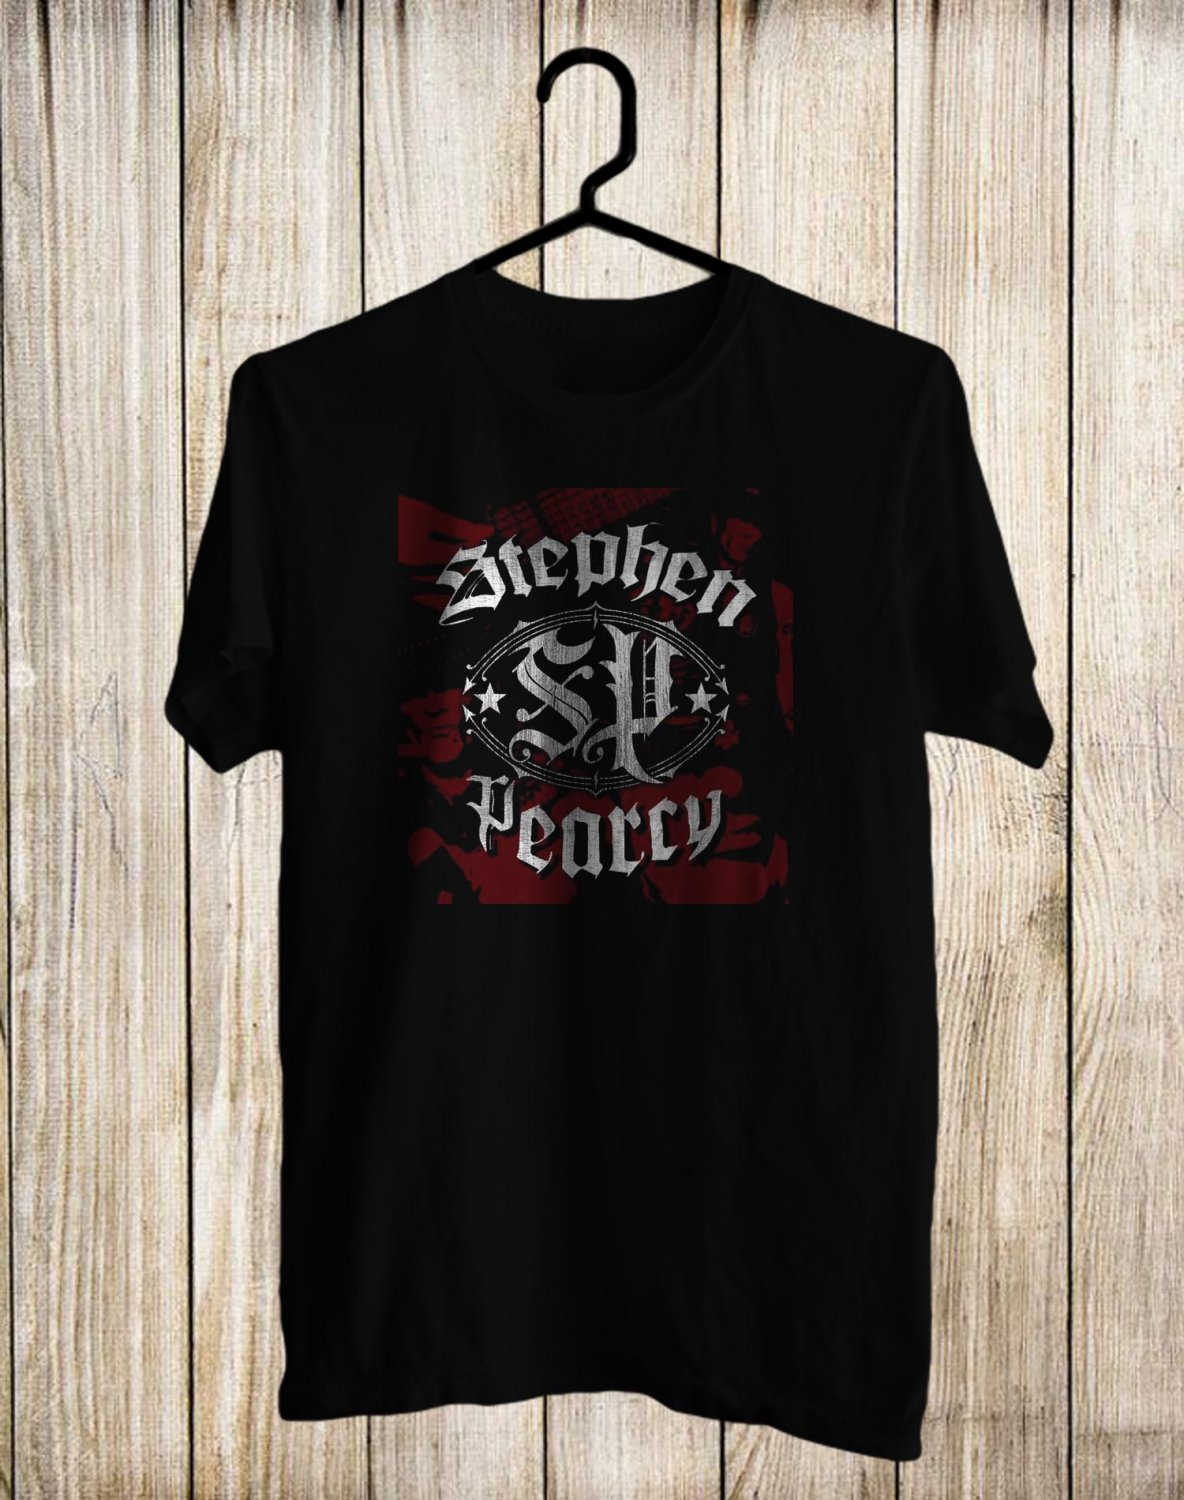 Stephen Pearcy Tour 2017 Black Tee's Front Side by Complexart